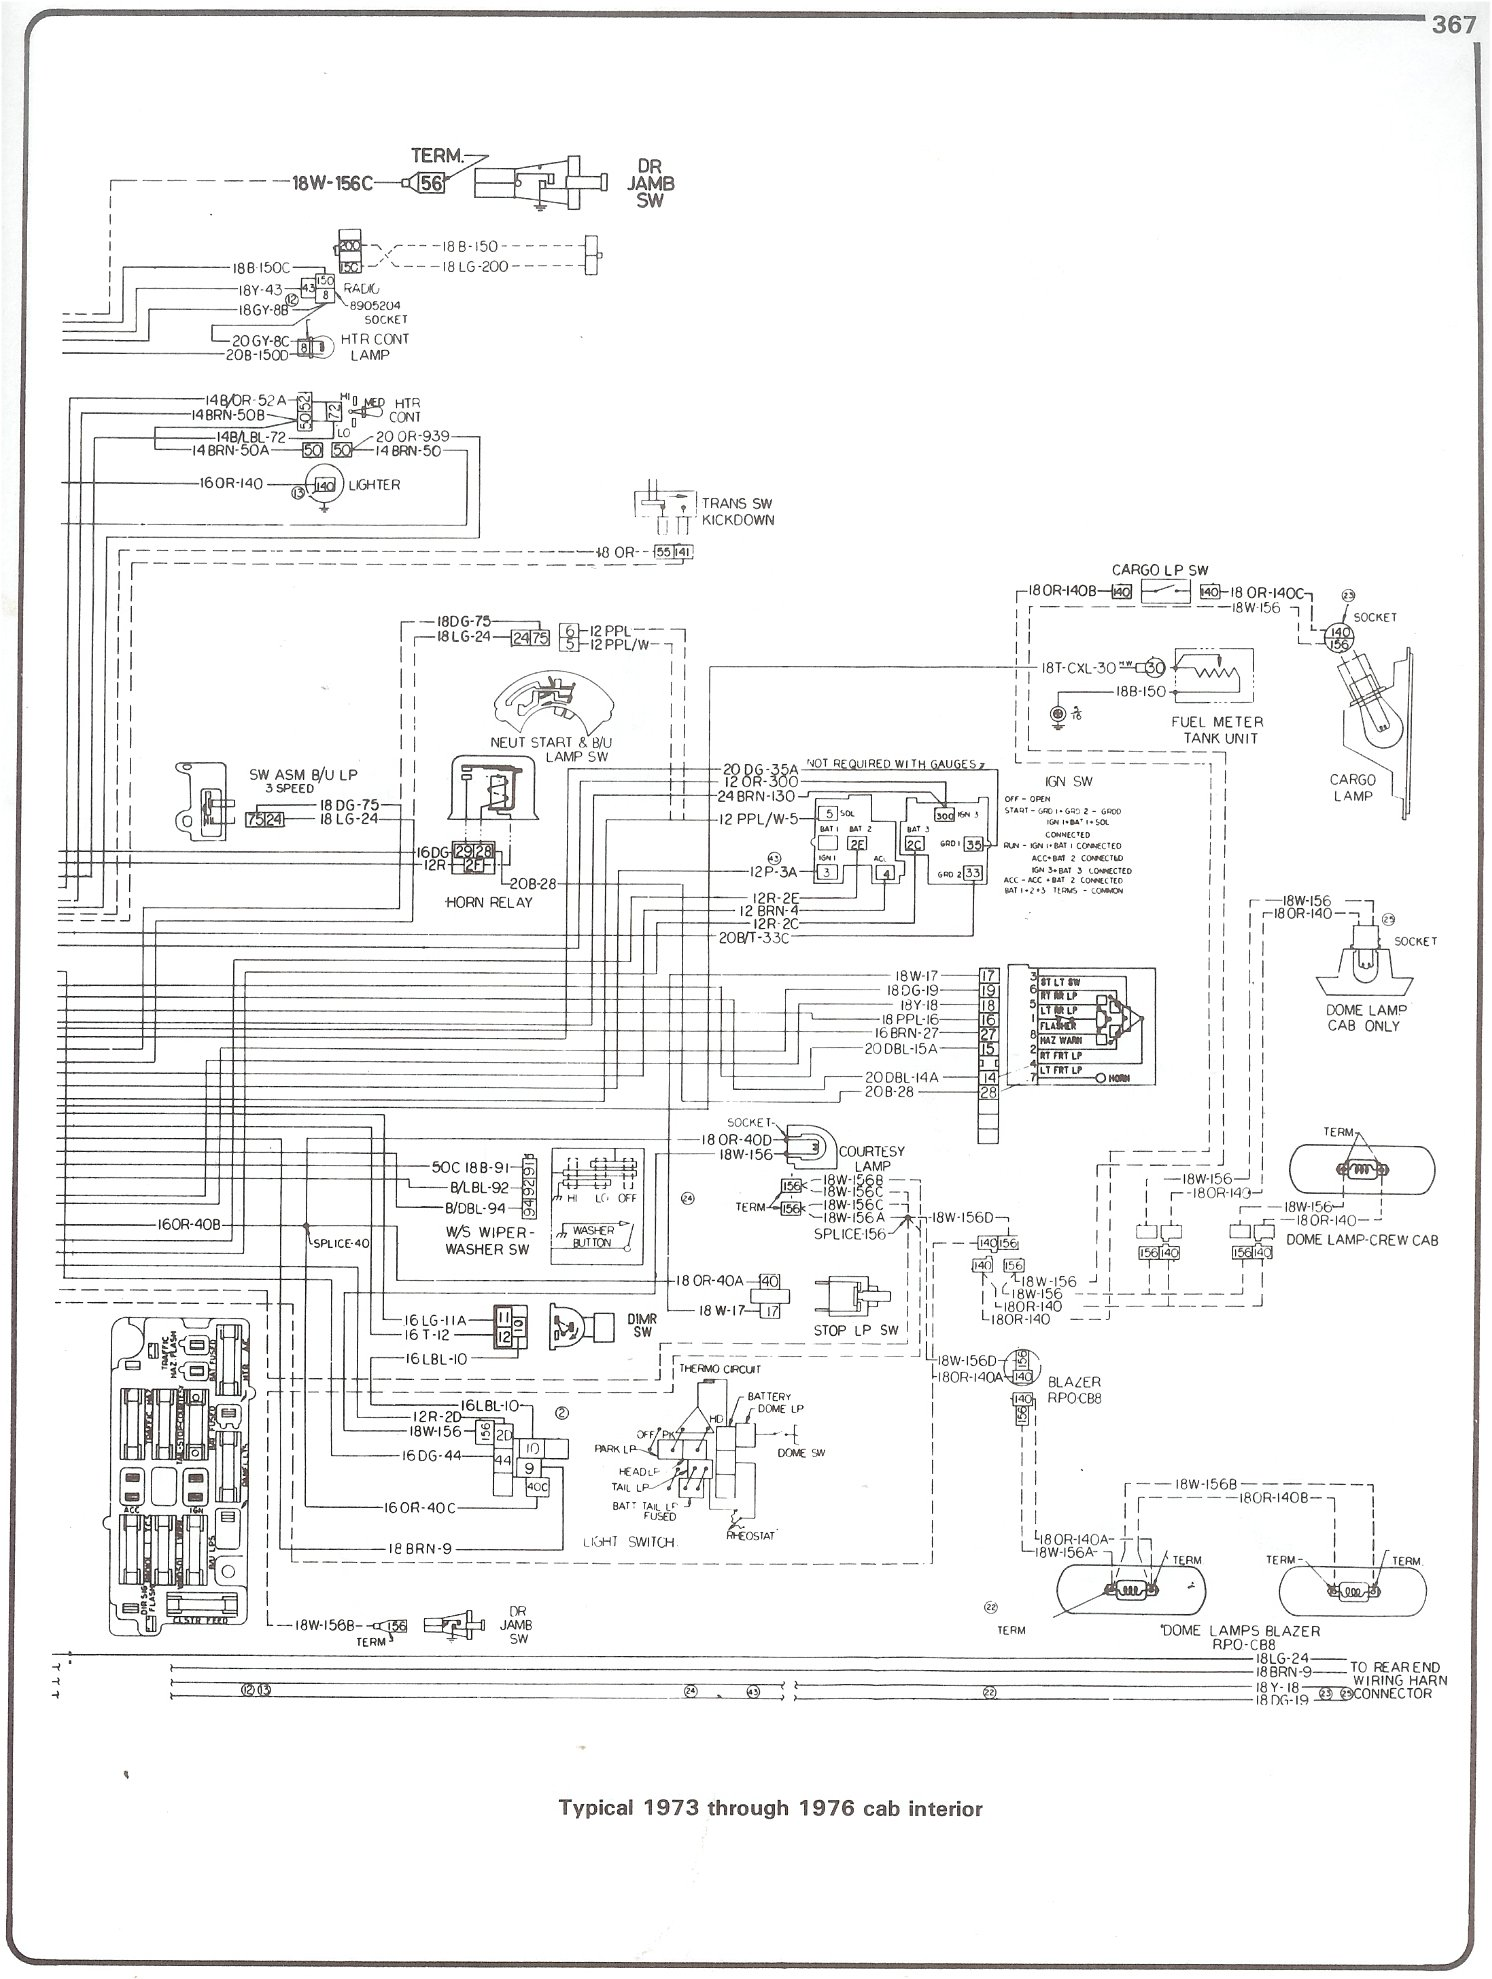 complete 73 87 wiring diagrams rh forum 73 87chevytrucks com Chevy Truck Wiring Diagram Chevy Truck Wiring Diagram